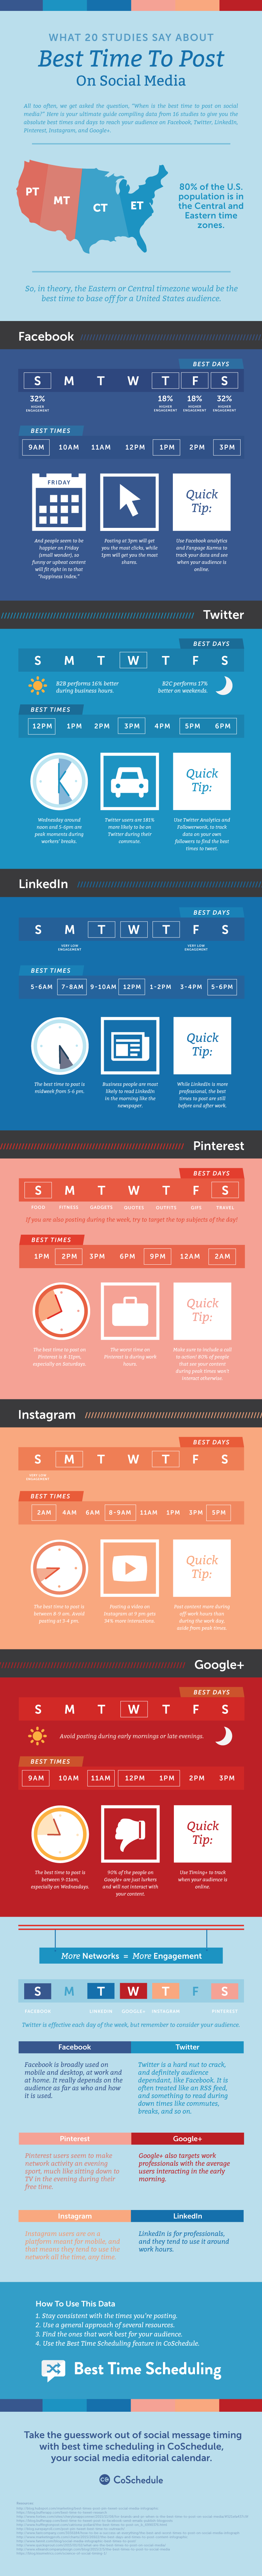 The Best Times to Post on Social Media (According to 20 Studies) [Infographic] | Social Media Today